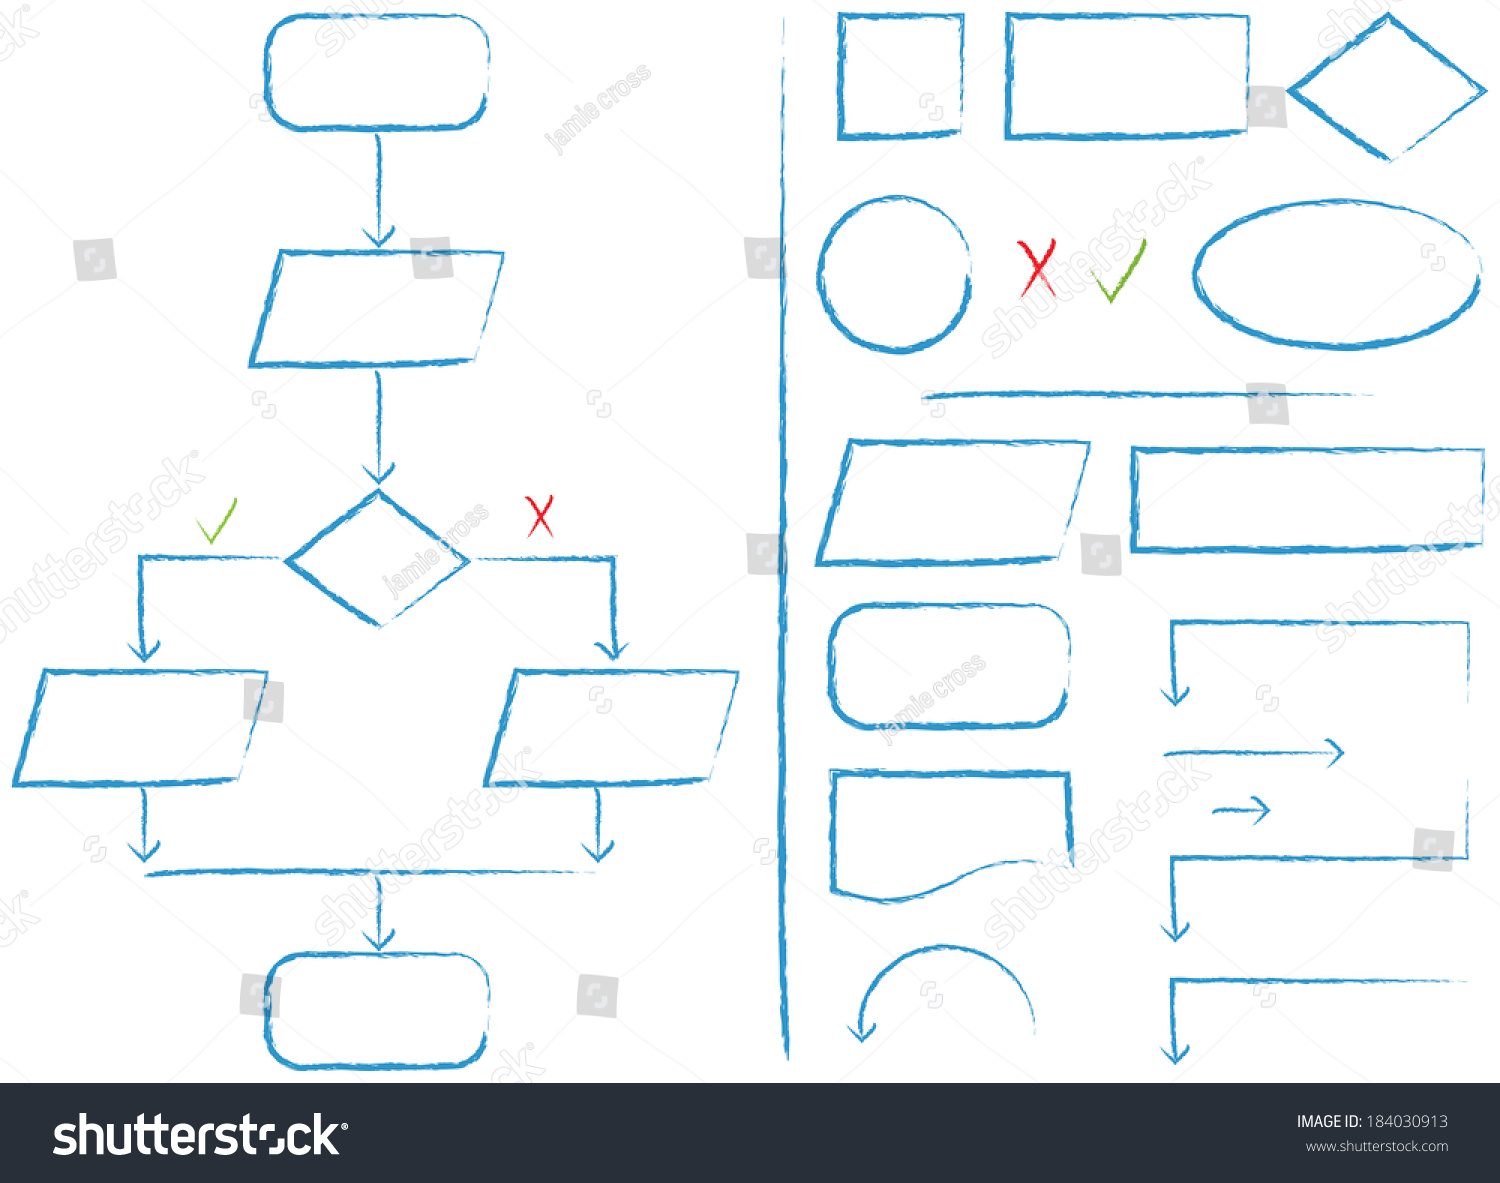 Complete flow chart flow chart elements stock illustration complete flow chart flow chart elements stock illustration 184030913 shutterstock nvjuhfo Gallery